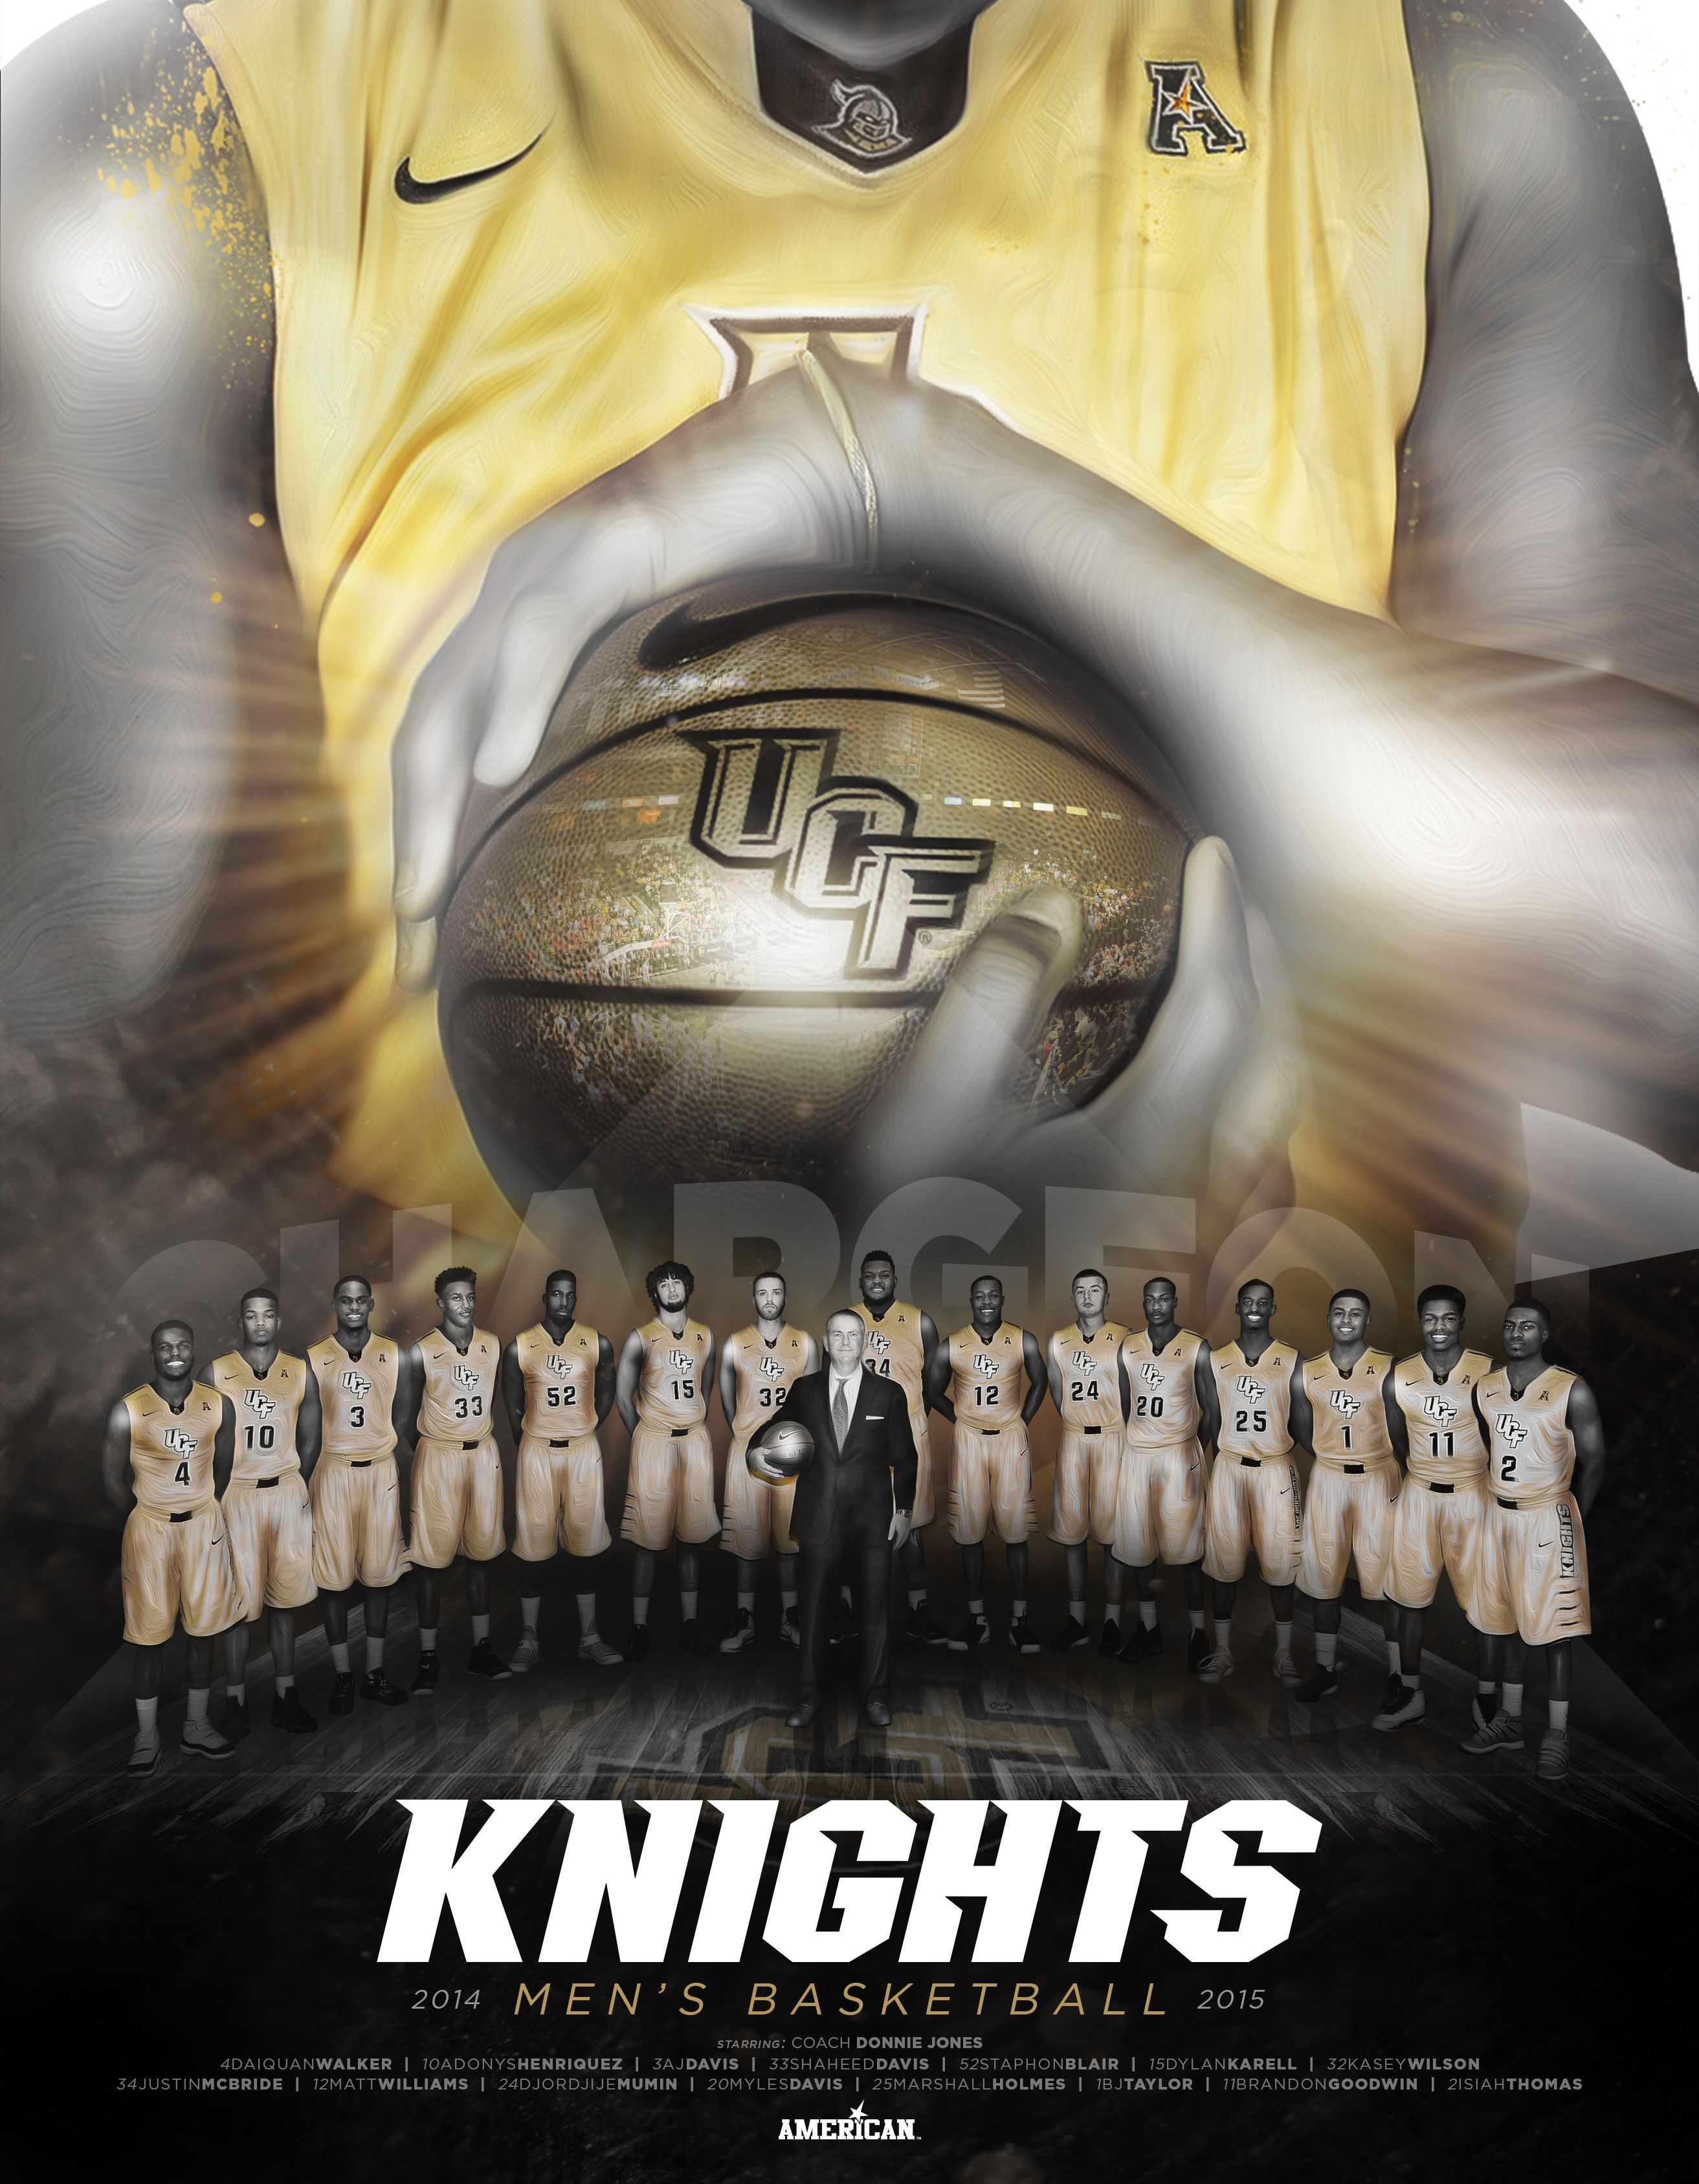 ucf men s basketball ucf knights posters 2014 15 ucf men s basketball